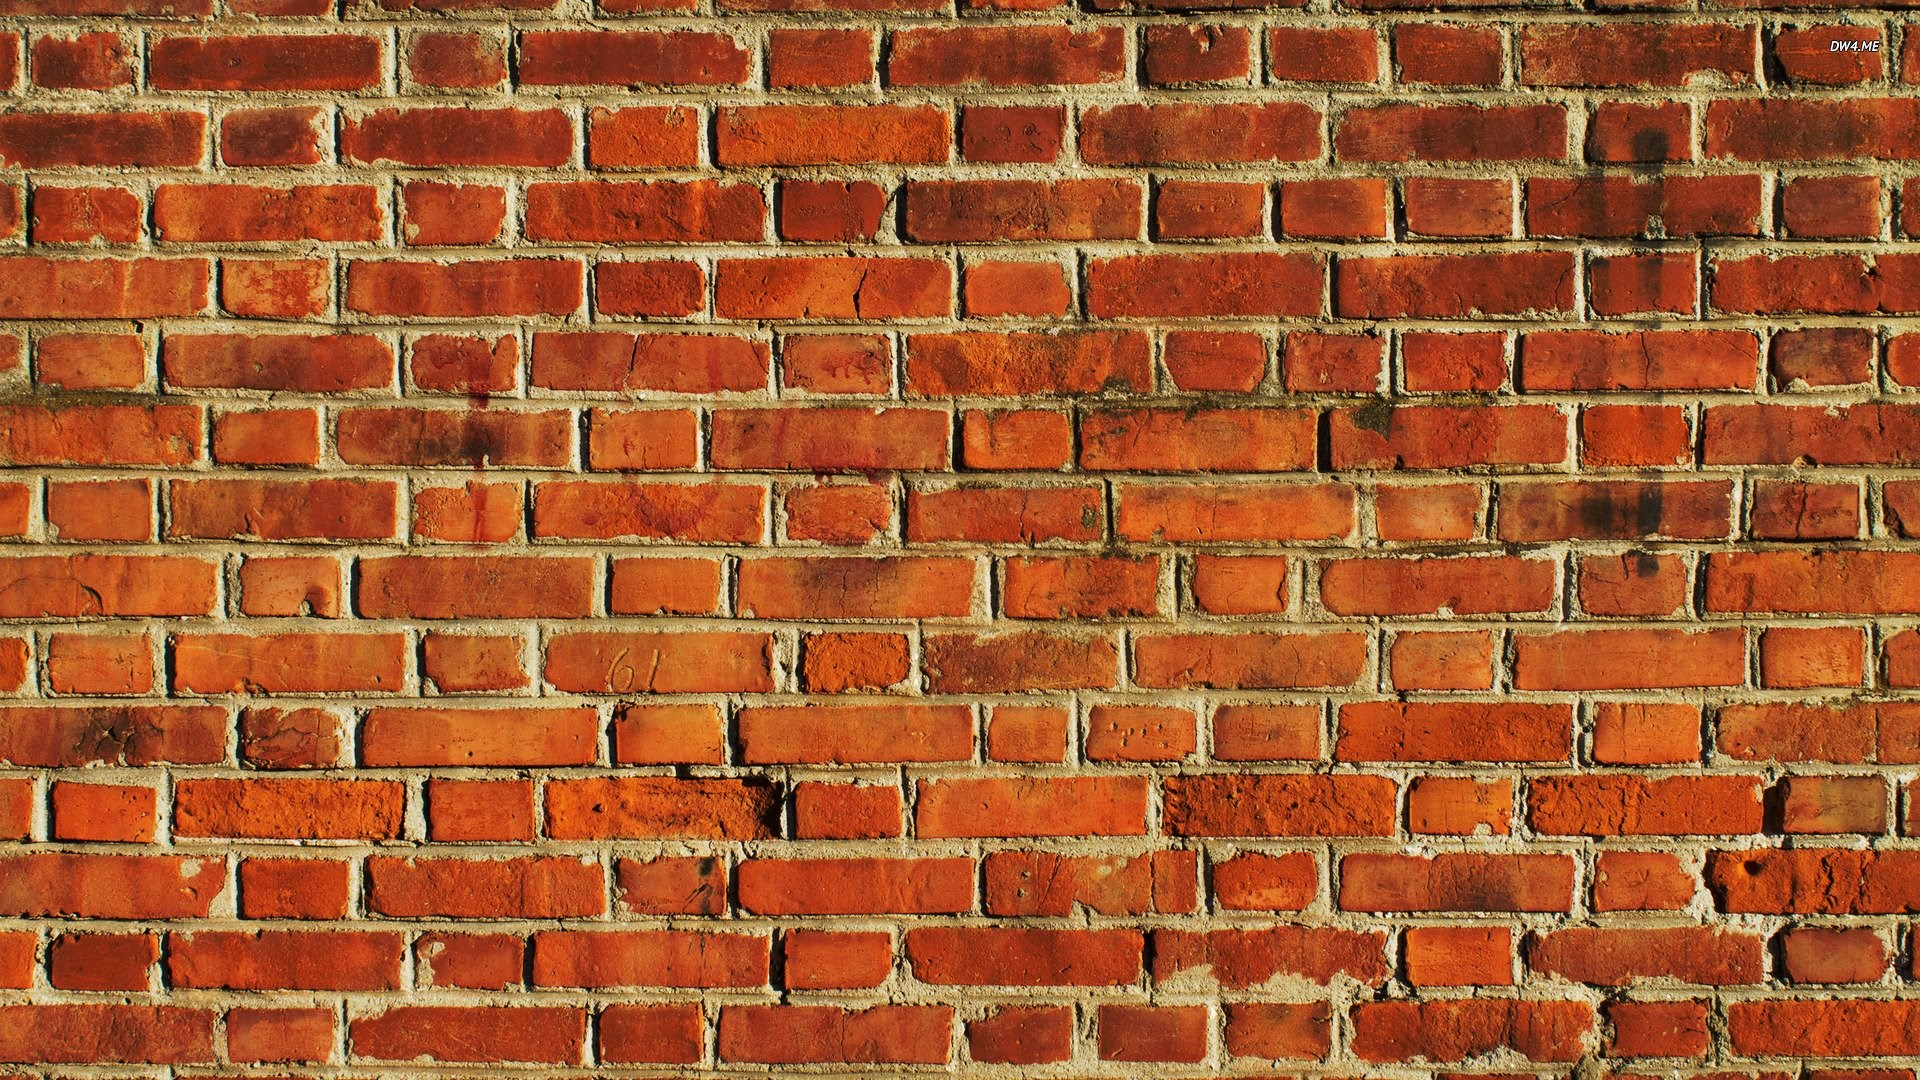 brick-pack-1080p-hd-wallpaper-wp3803436